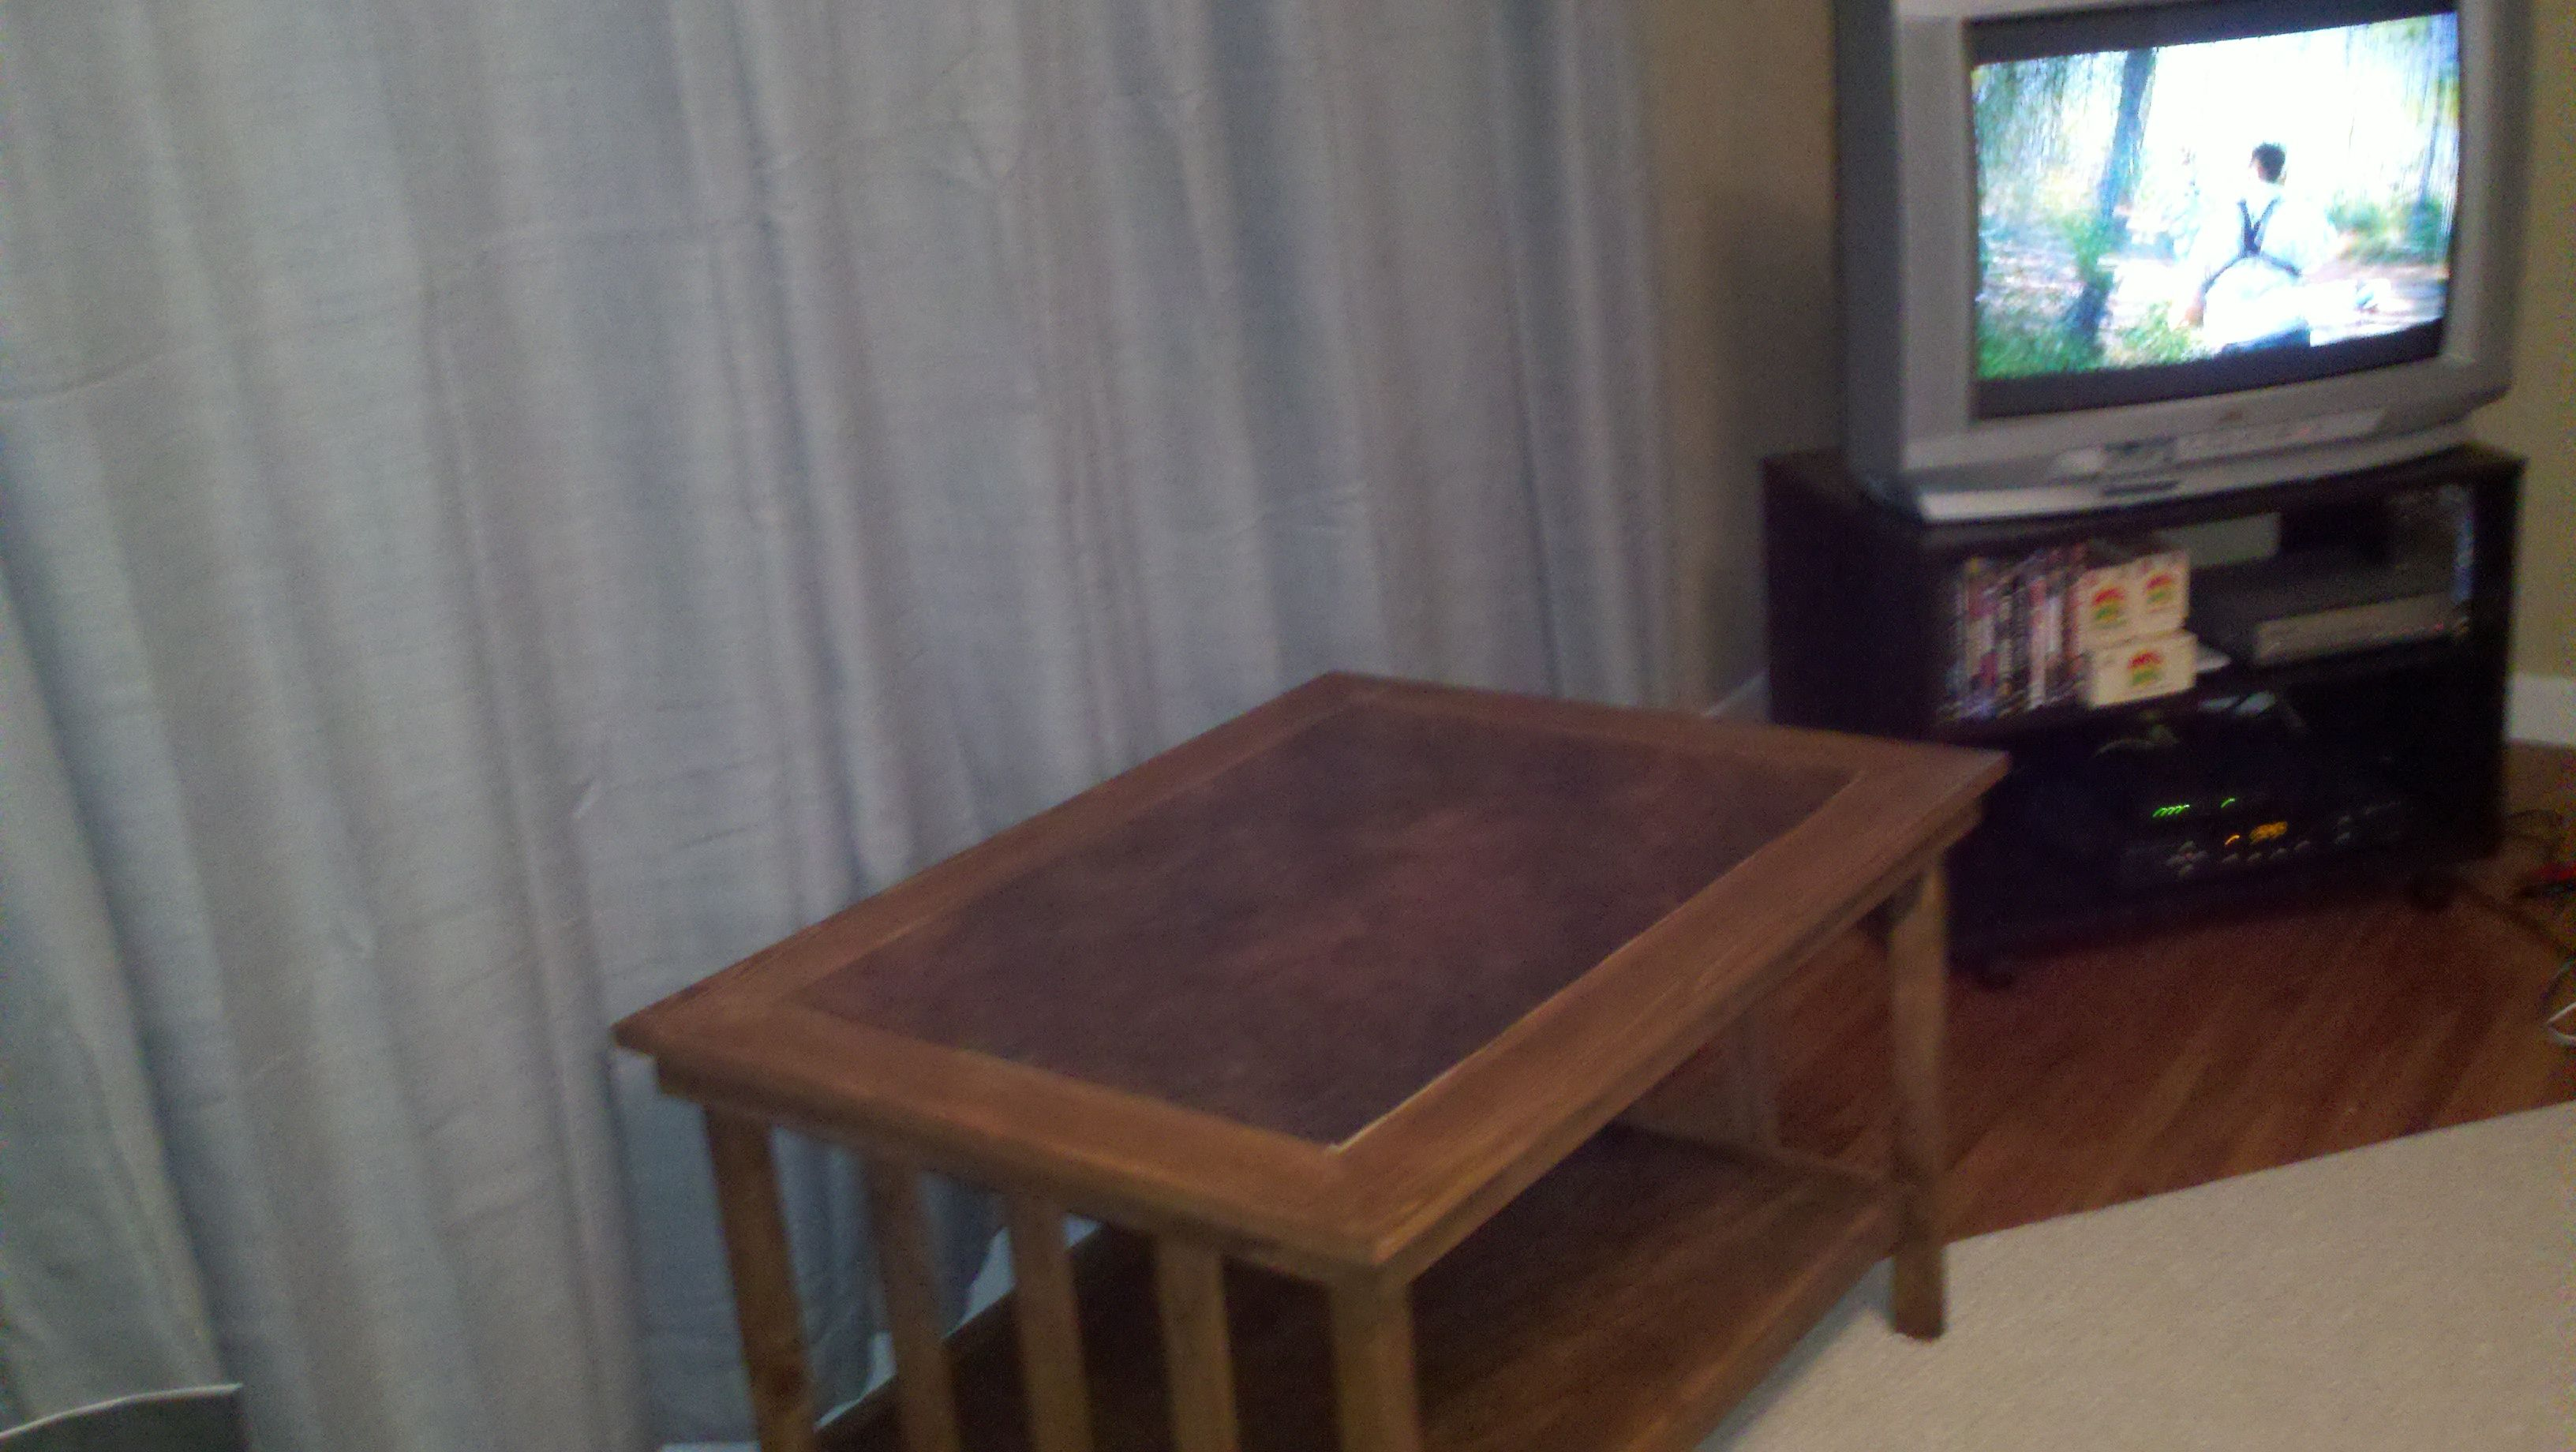 Coffee Table with Formica counter-top insert